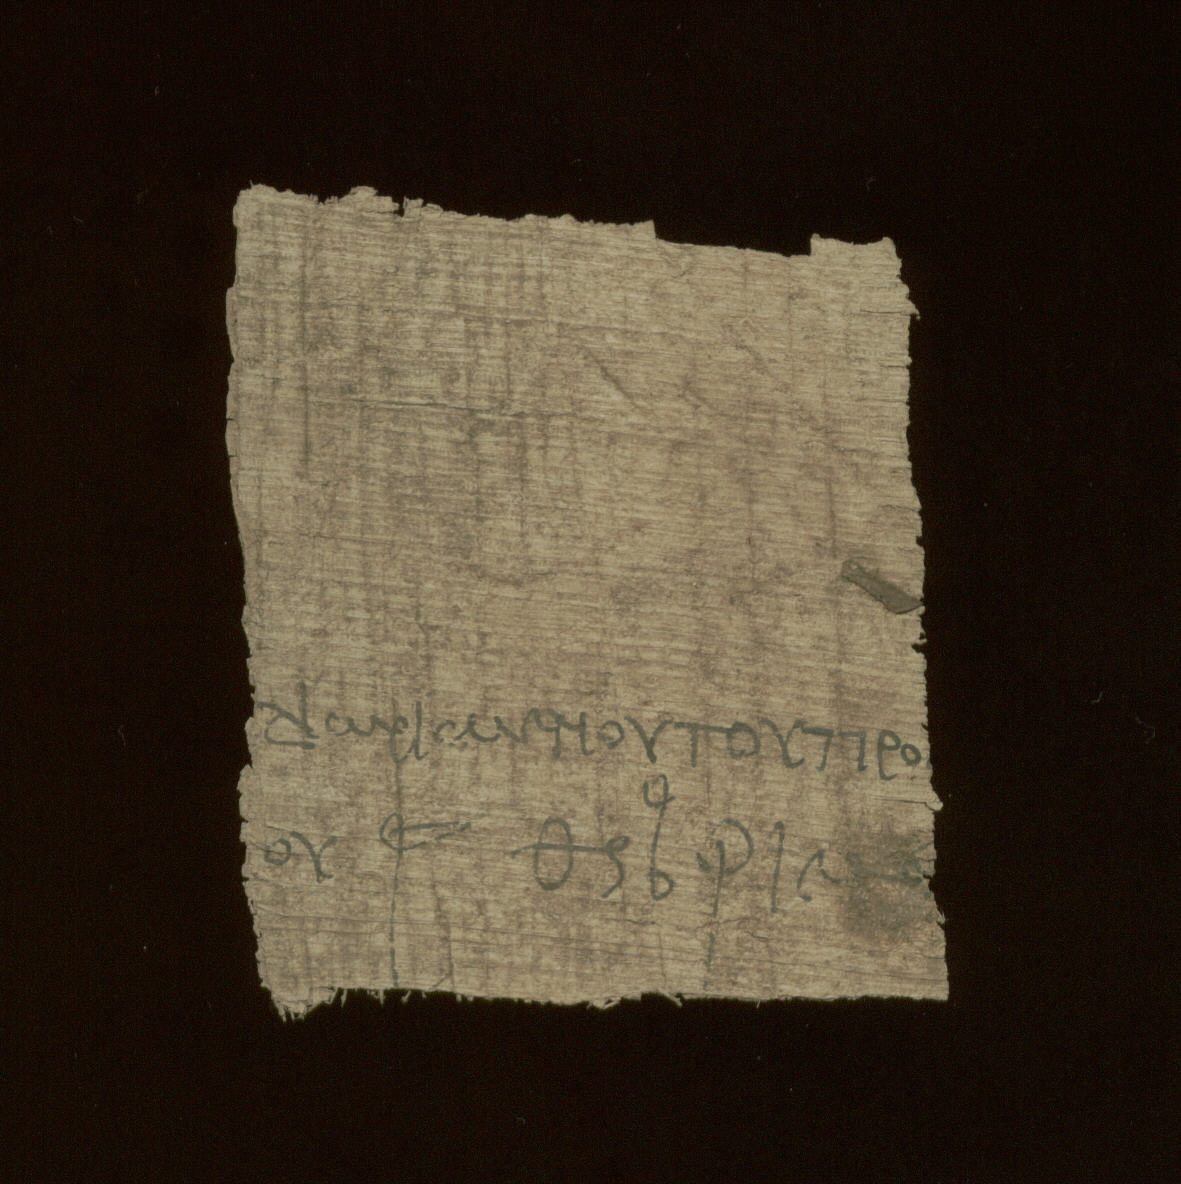 Greek Manuscript Fragment written on papyrus - Enlarged View - Recto